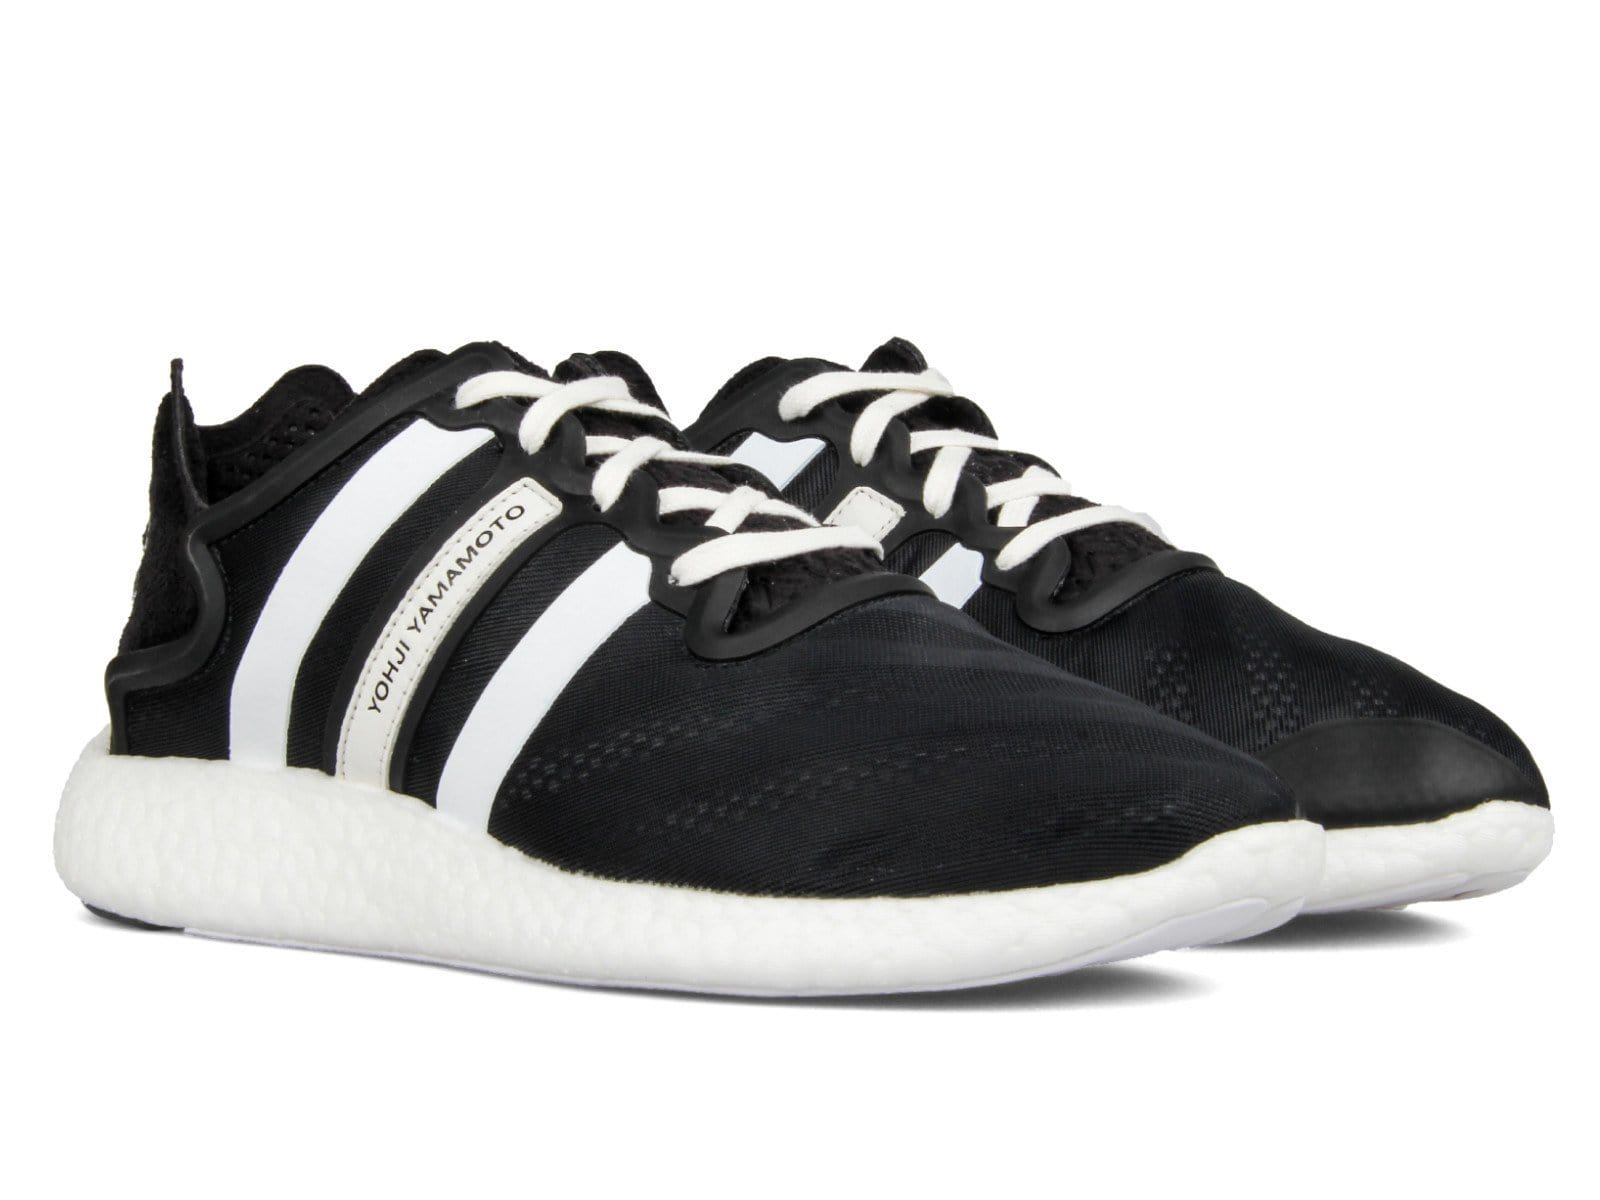 c5e0ae415e42c Adidas Y-3 YOHJI RUN Core Black Footwear White Core Black – Bodega